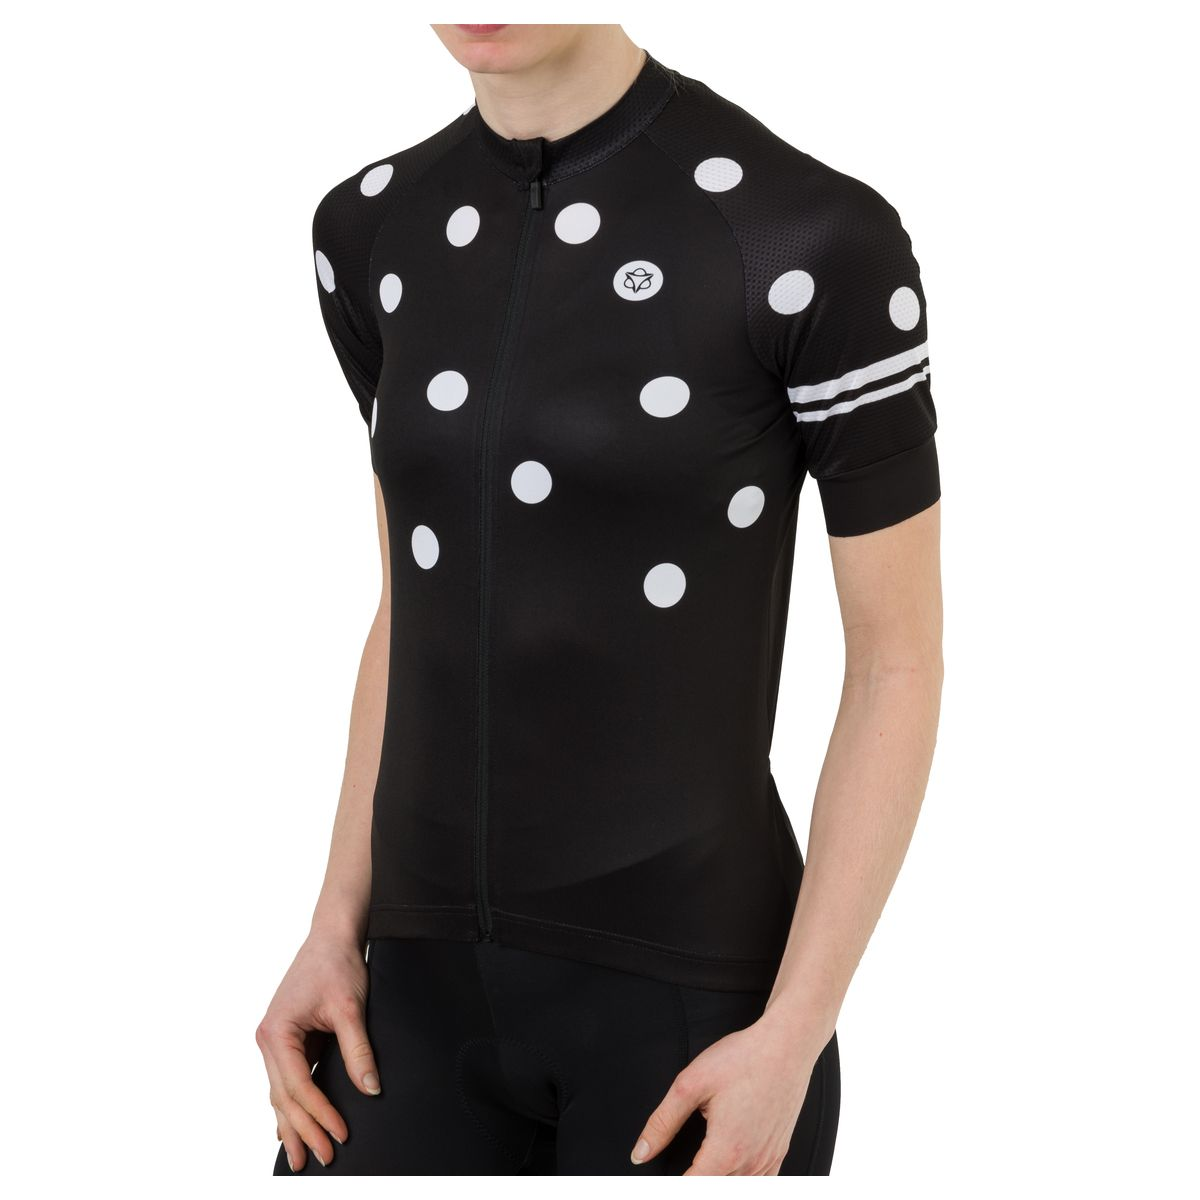 Dot Fietsshirt Essential Dames fit example